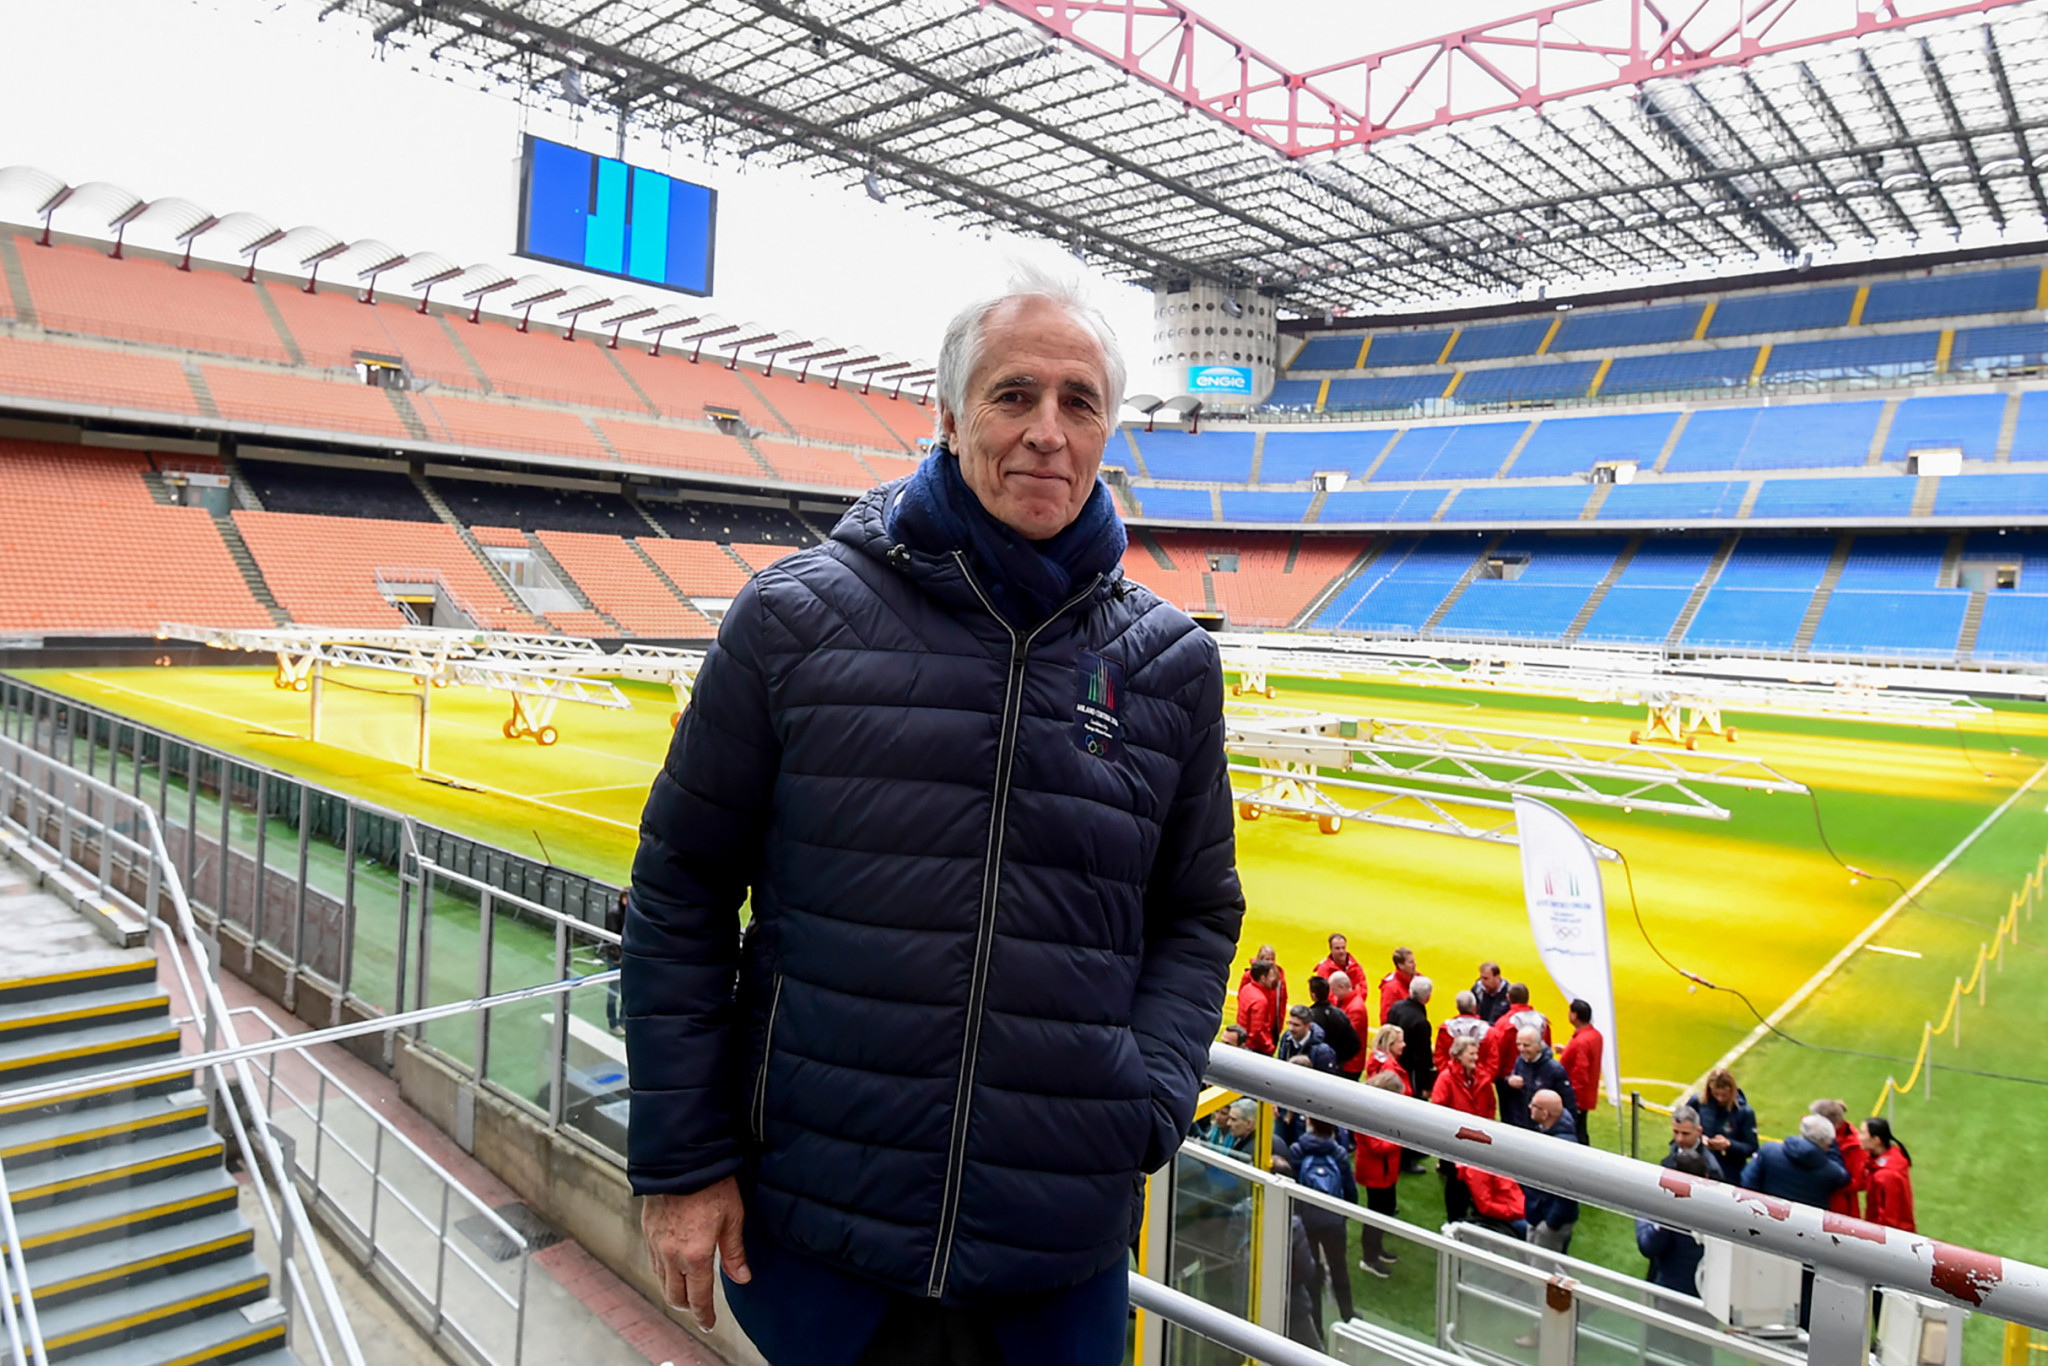 San Siro will not be demolished before Milan Cortina 2026, claims city Mayor